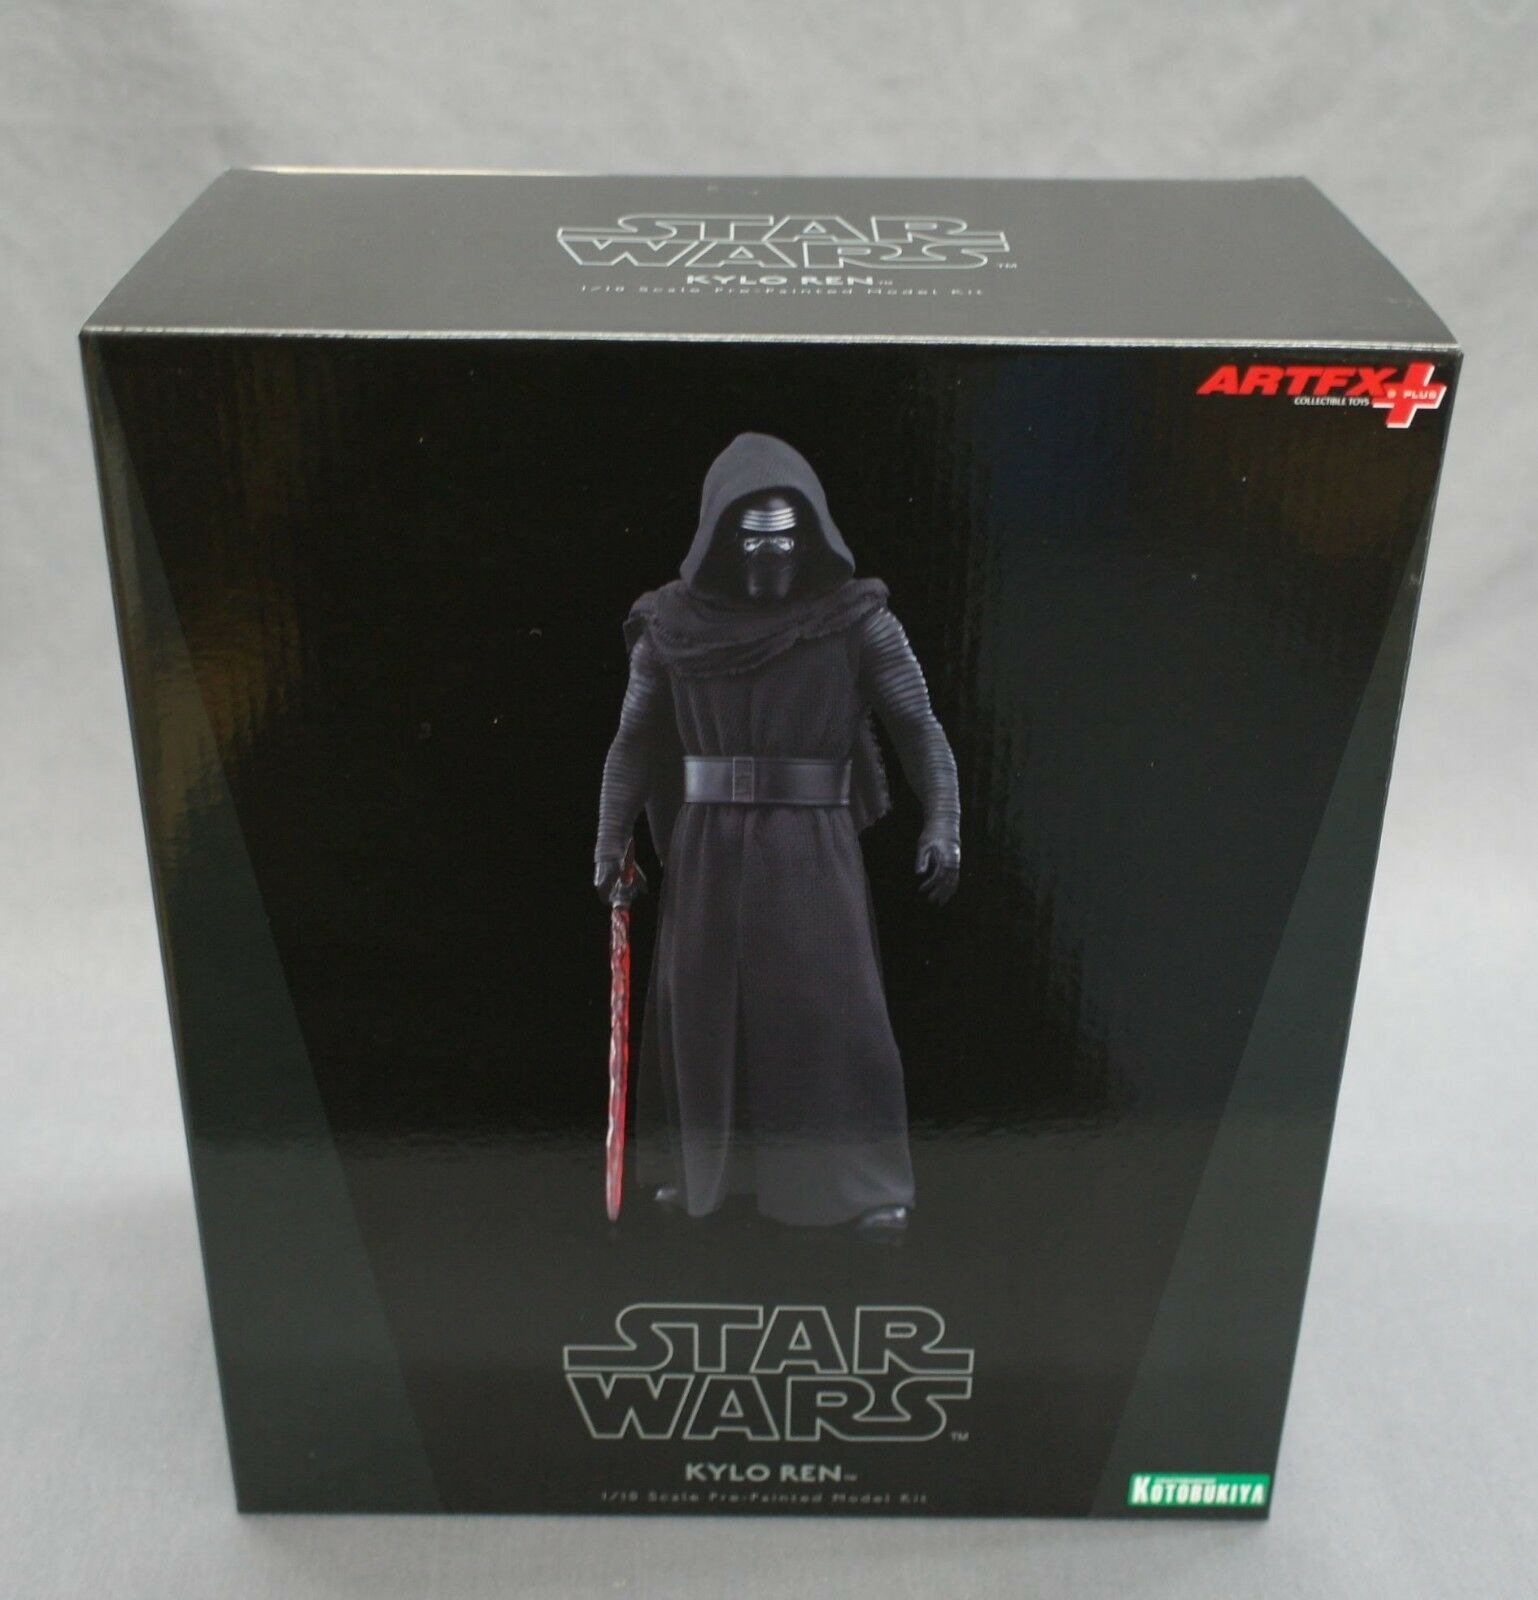 ARTFX+ estrella guerras The Force Awakens Kylo  Ren 1 10 Kotobukiya Japan nuovo  negozio di moda in vendita